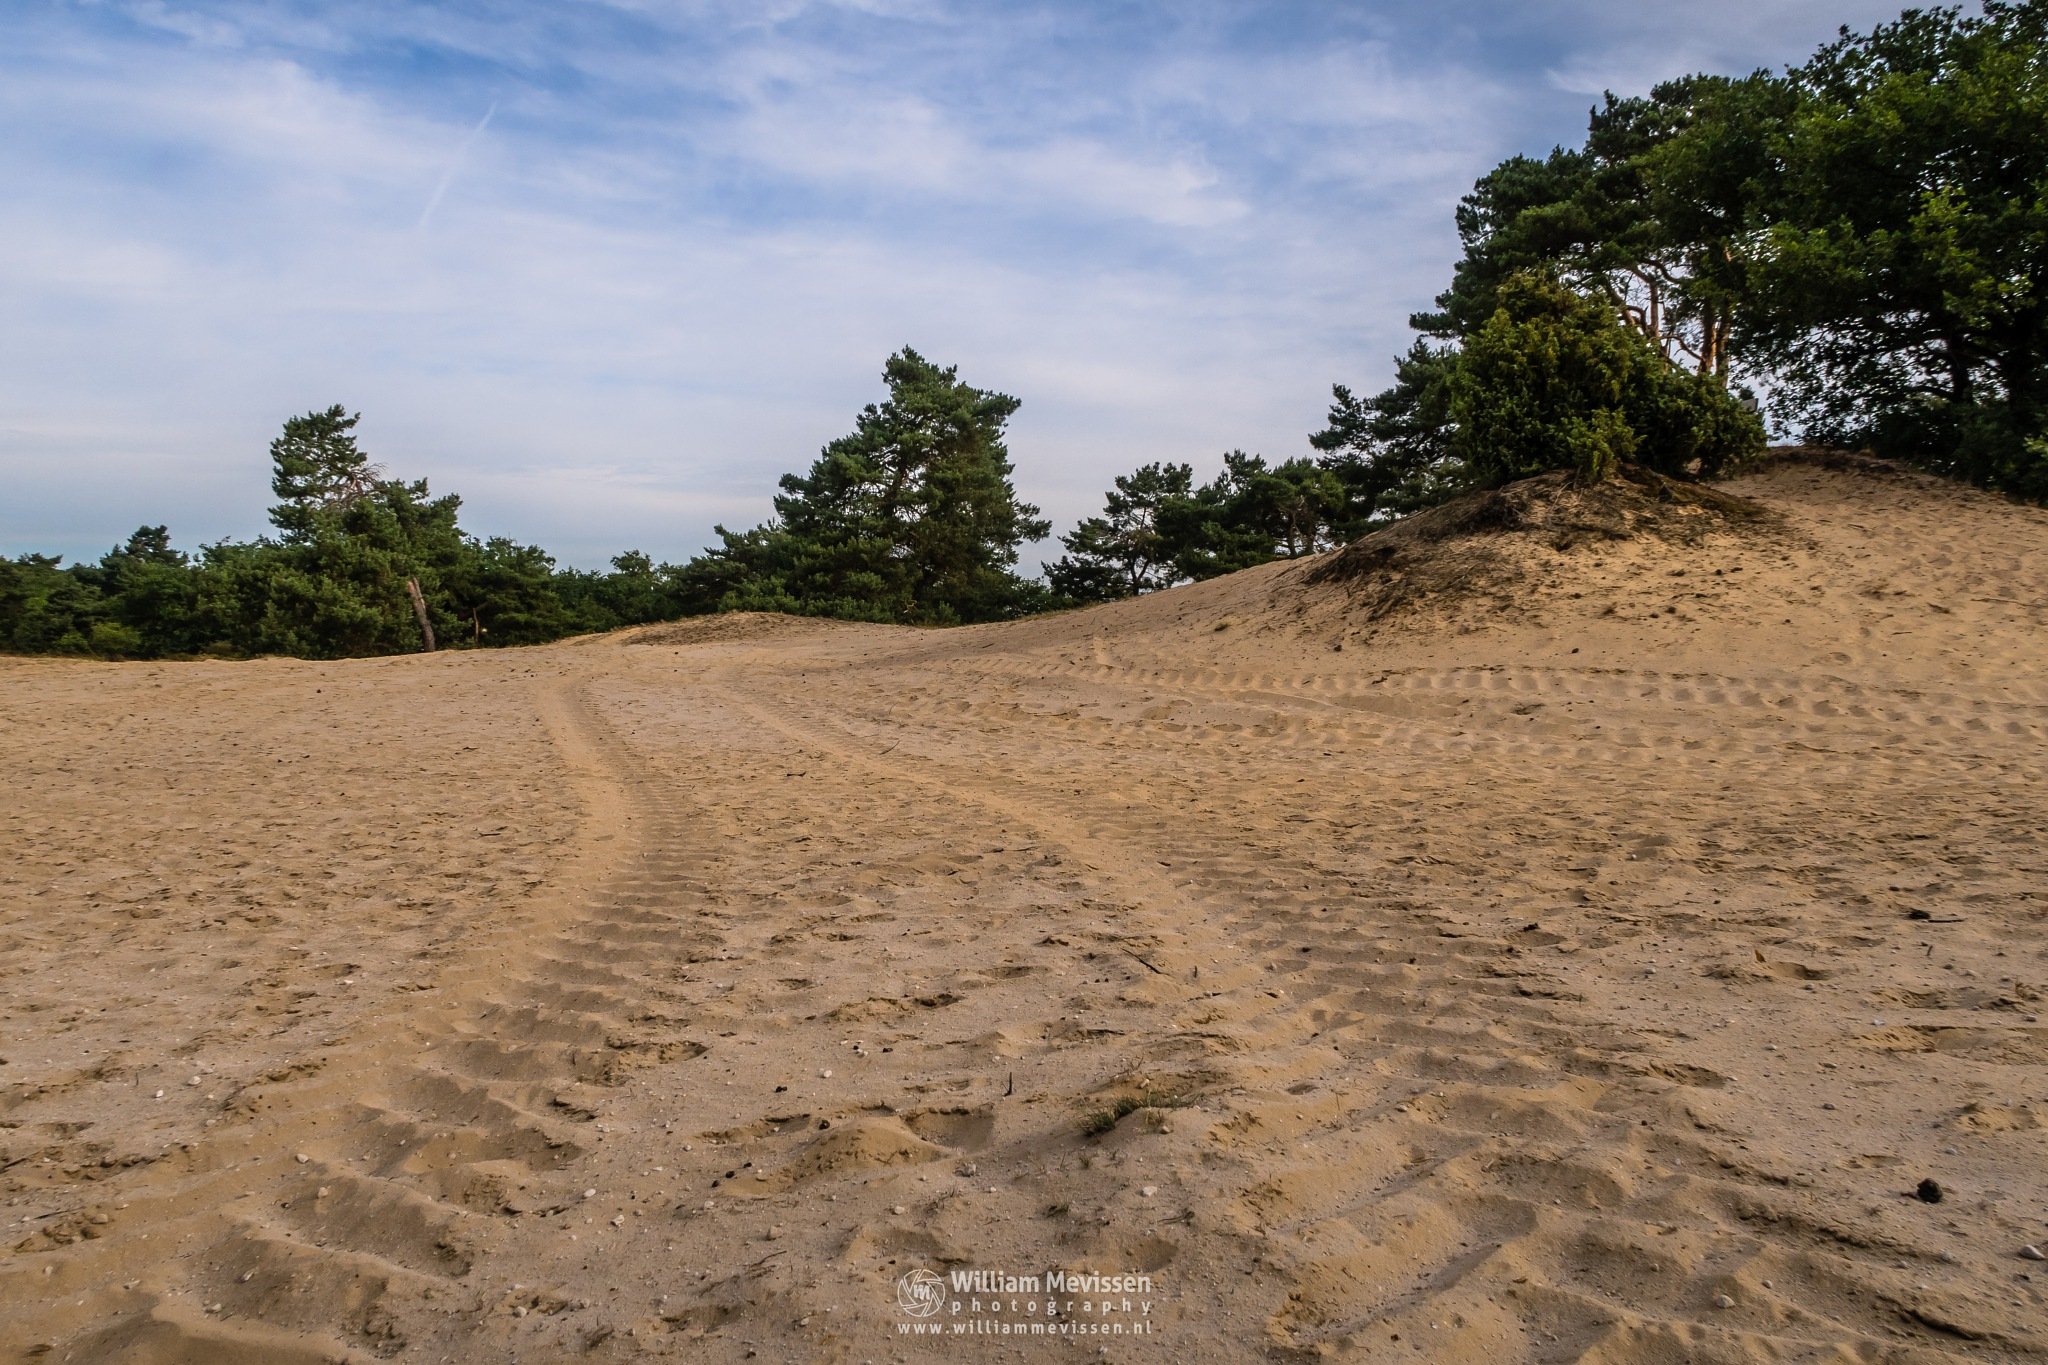 Tire Tracks by William Mevissen